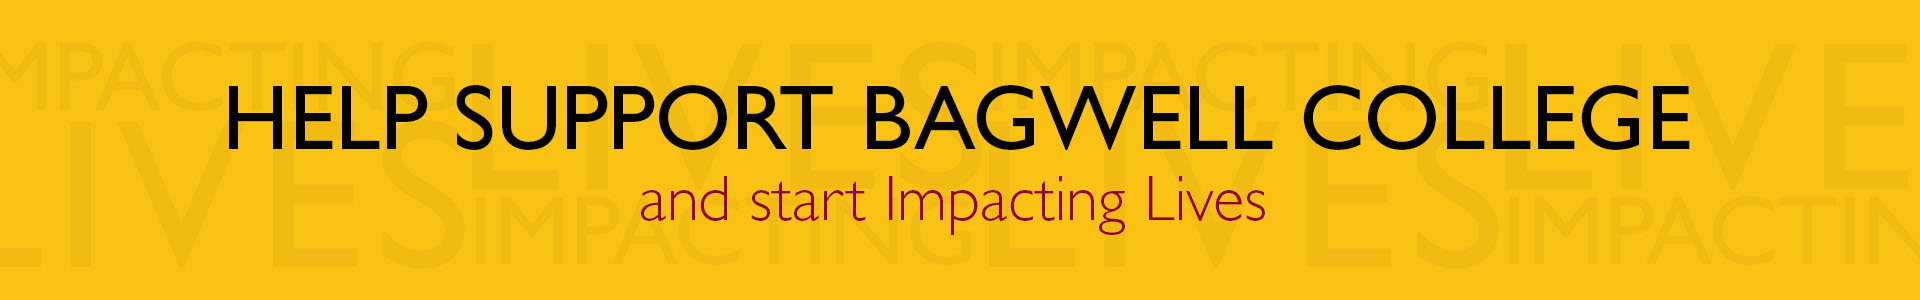 Support Bagwell College amd start impacting Lives